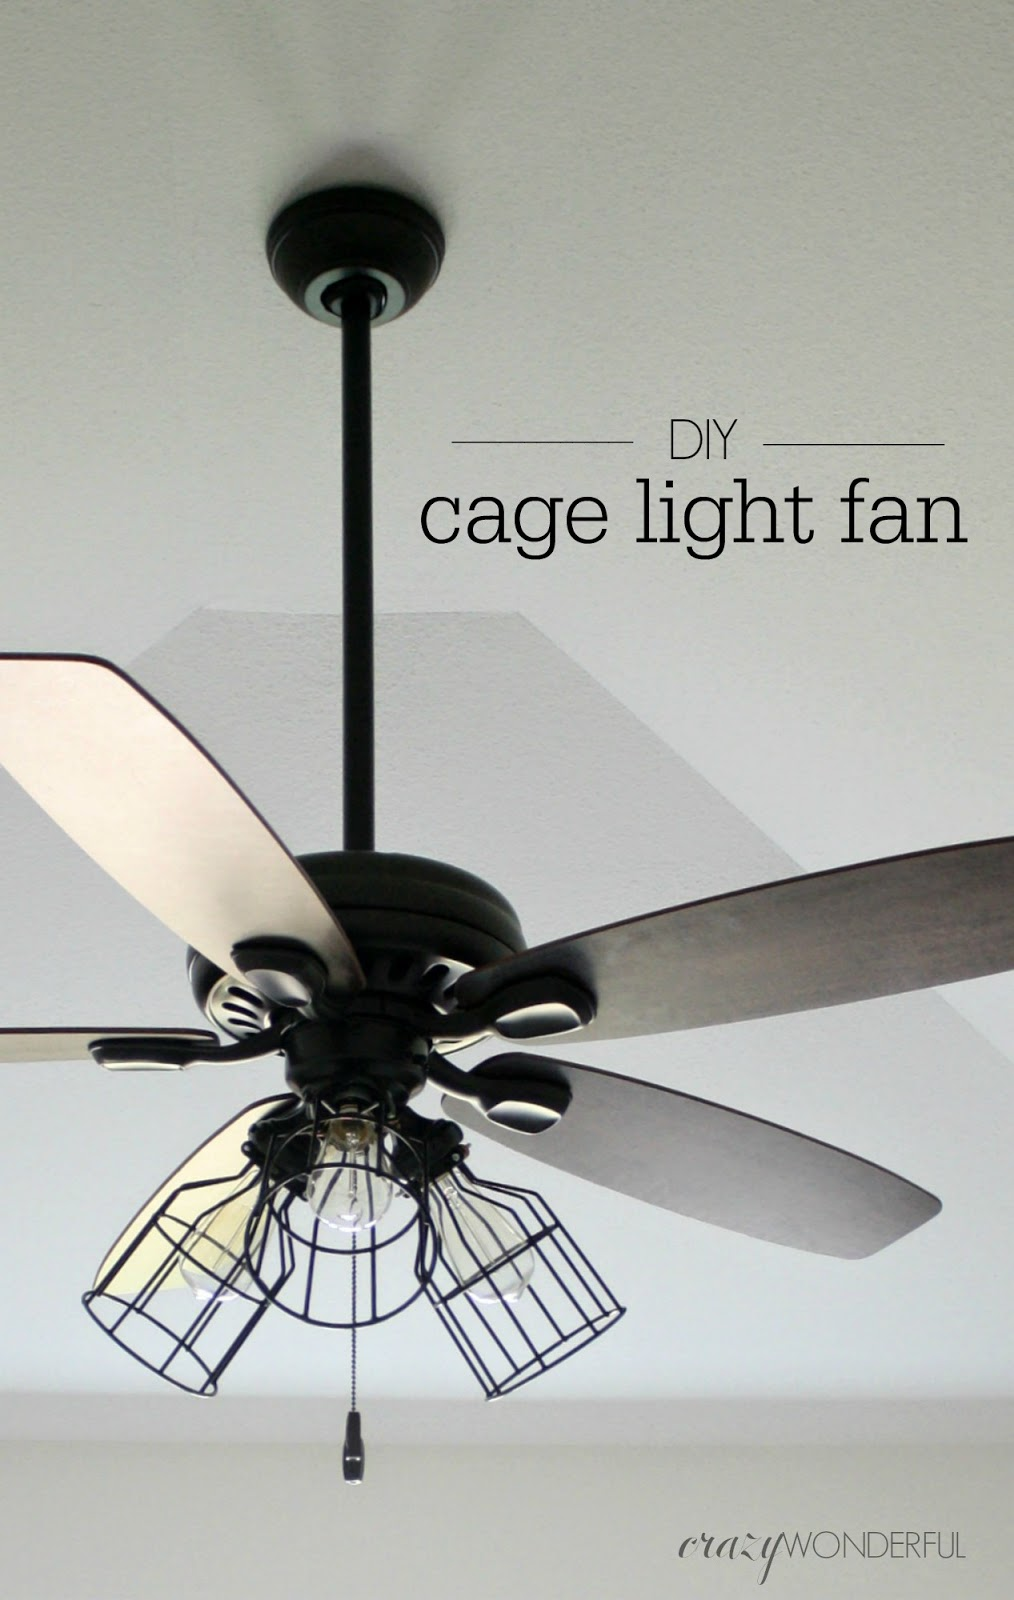 Ceiling Fans With Lights : Diy cage light ceiling fan crazy wonderful